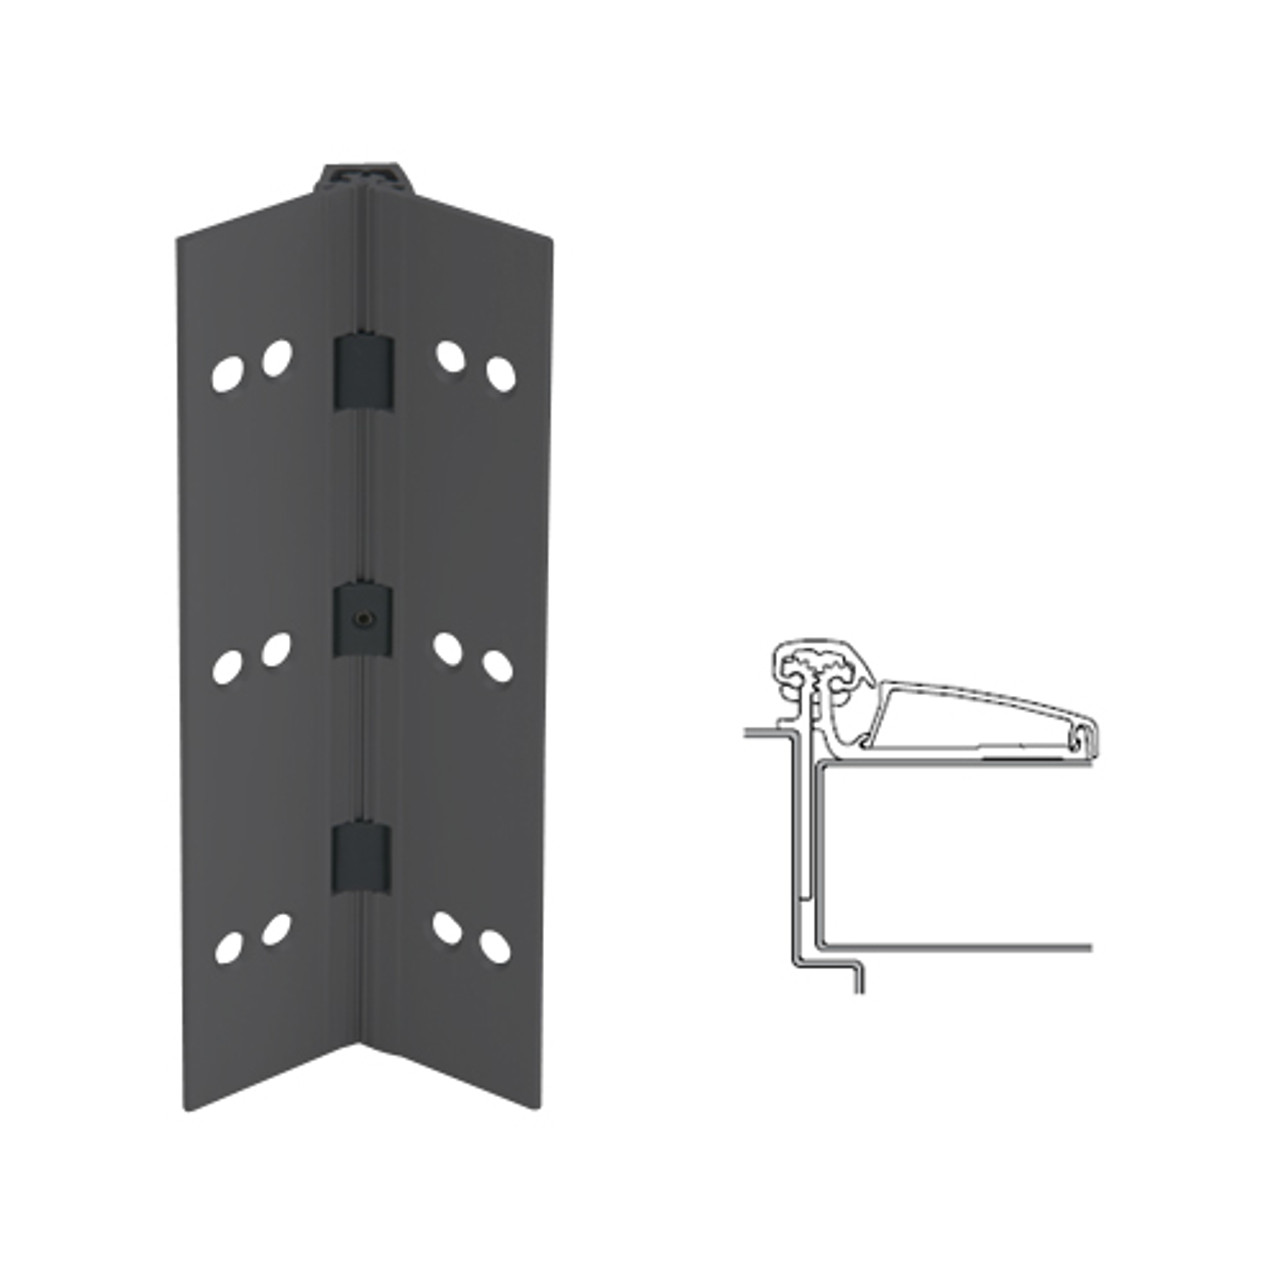 045XY-315AN-85-WD IVES Adjustable Half Surface Continuous Geared Hinges with Wood Screws in Anodized Black